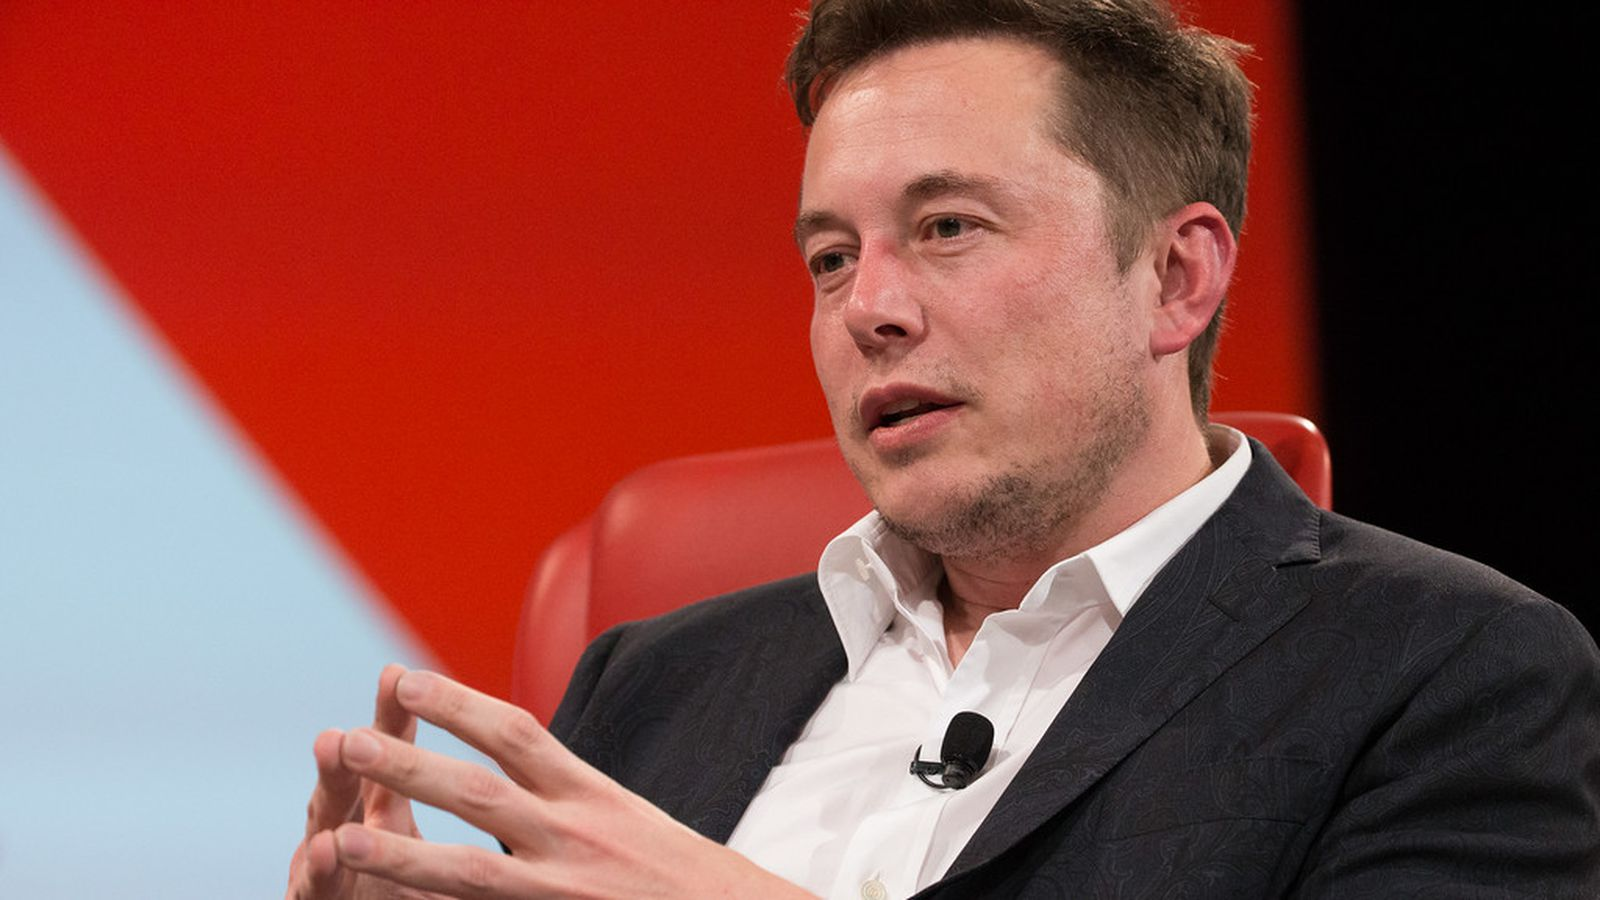 This tech investor is running full-page newspaper ads to convince Elon Musk to dump Trump